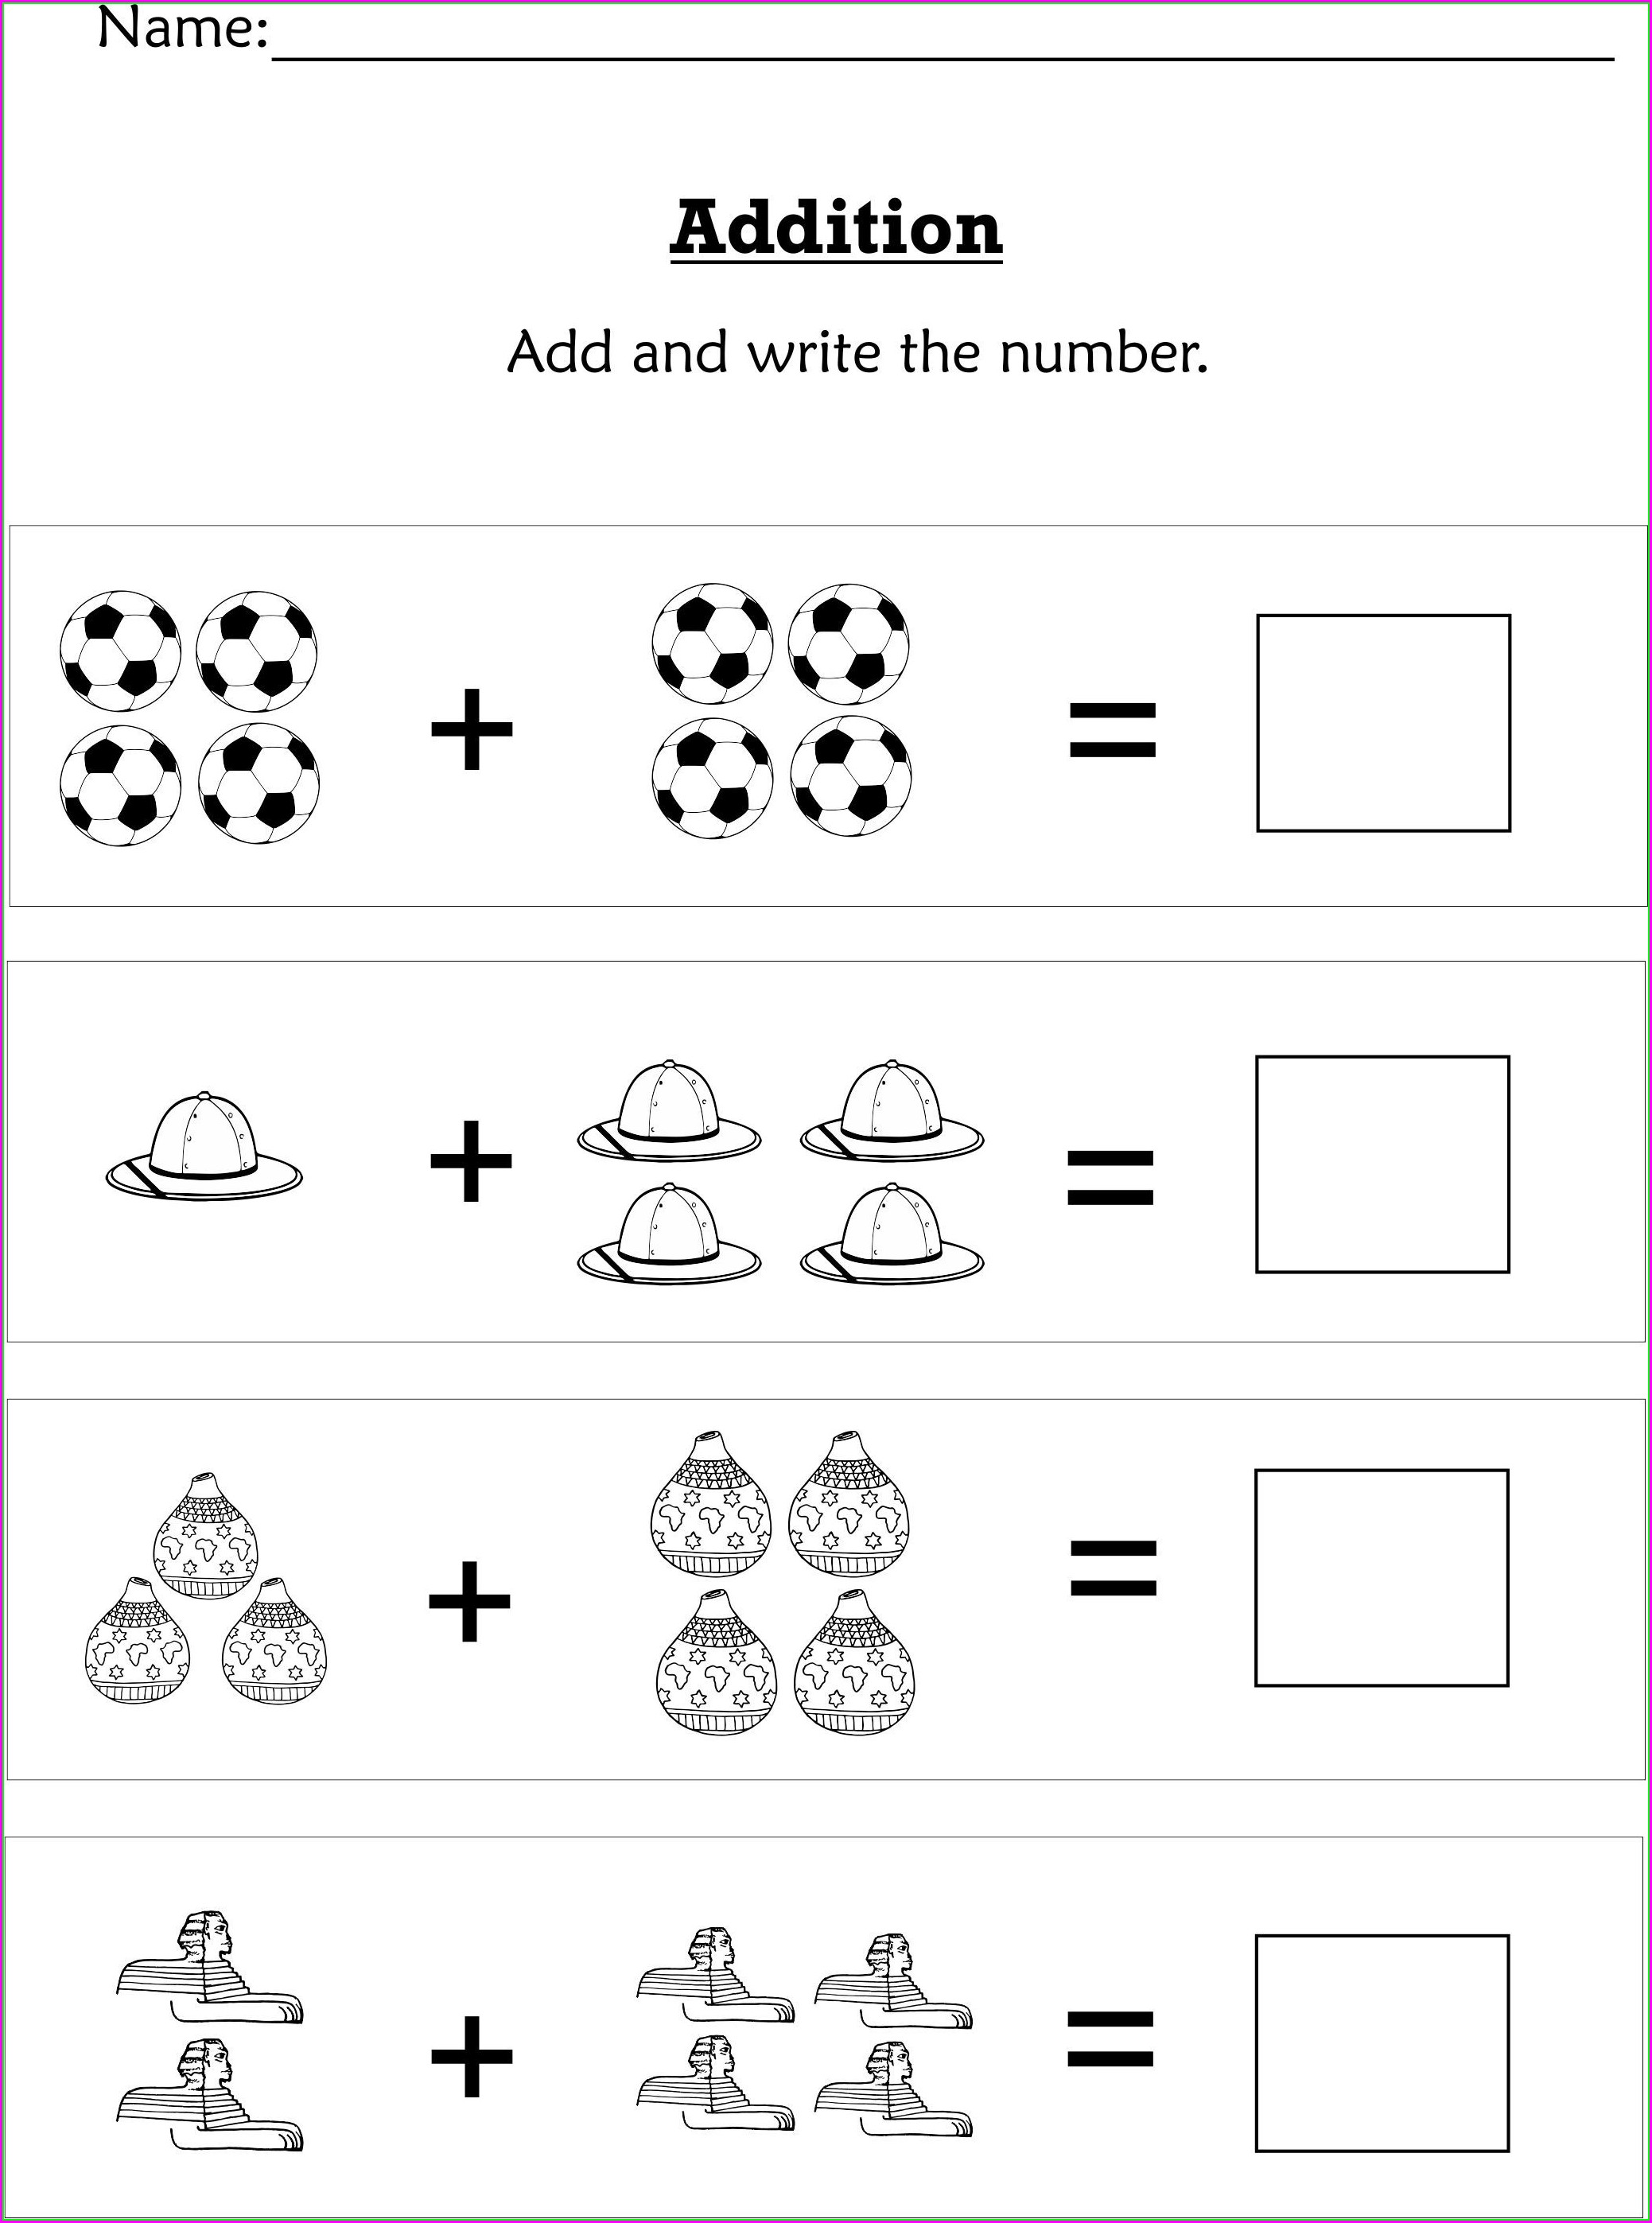 Simple Addition Math Worksheets For Preschoolers